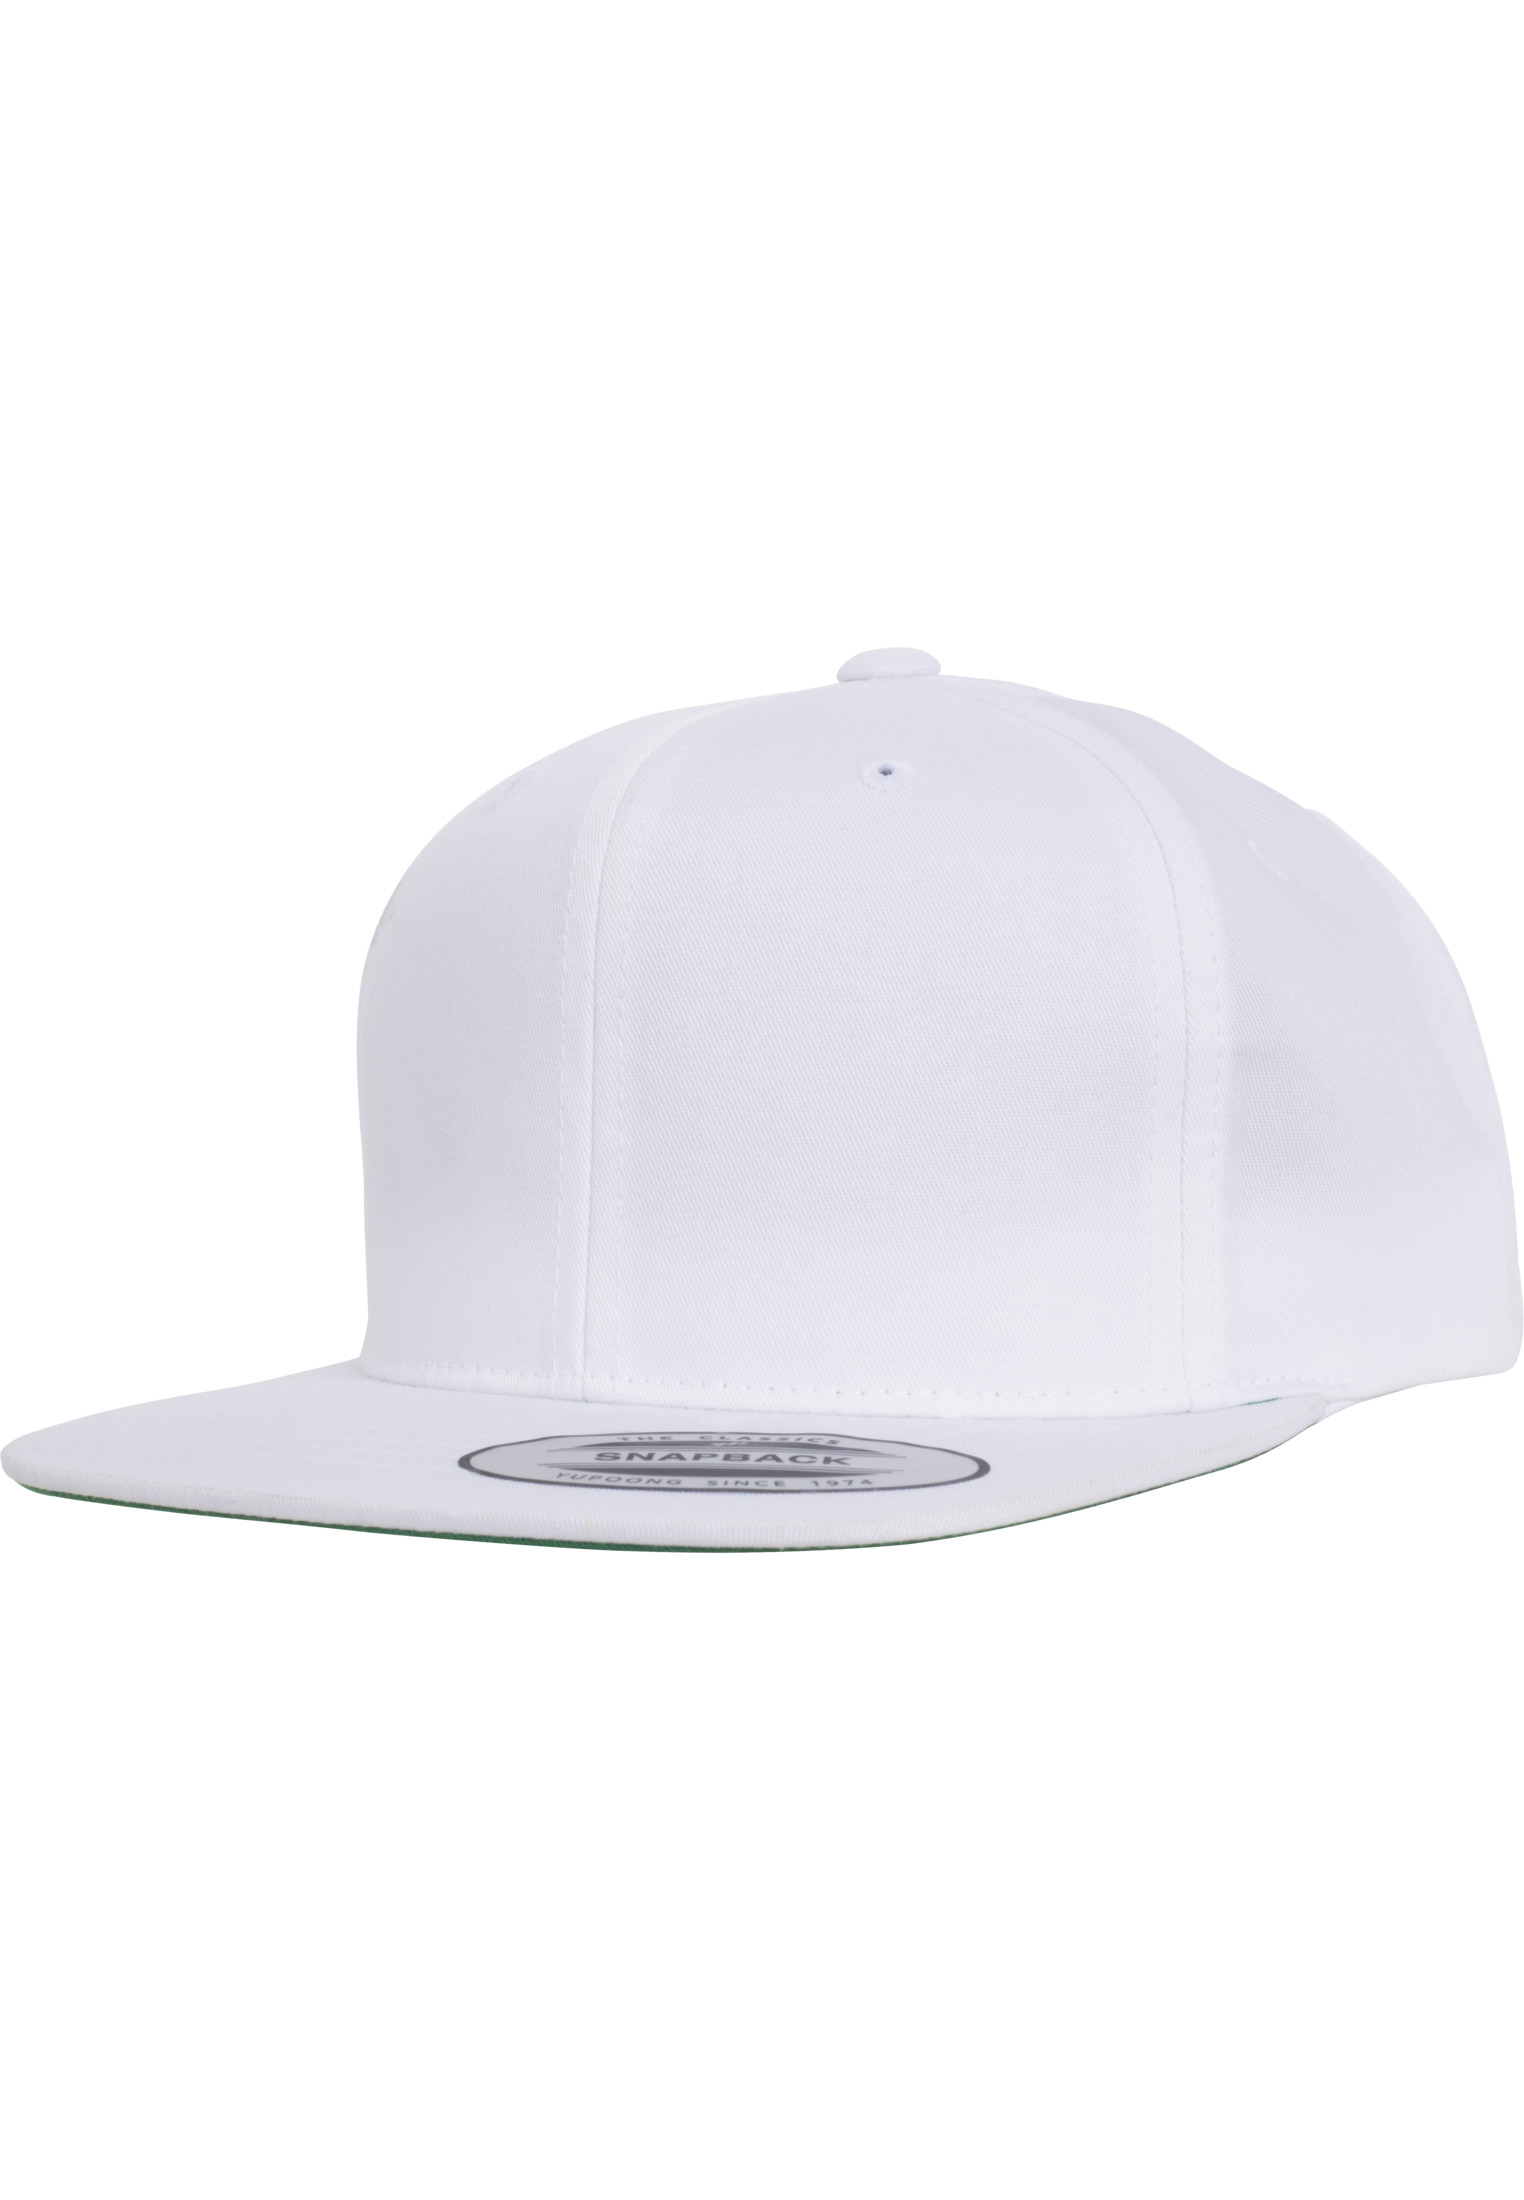 Urban Classic -Style Twill Snapback Youth Cap white - B (Ages 6-14)